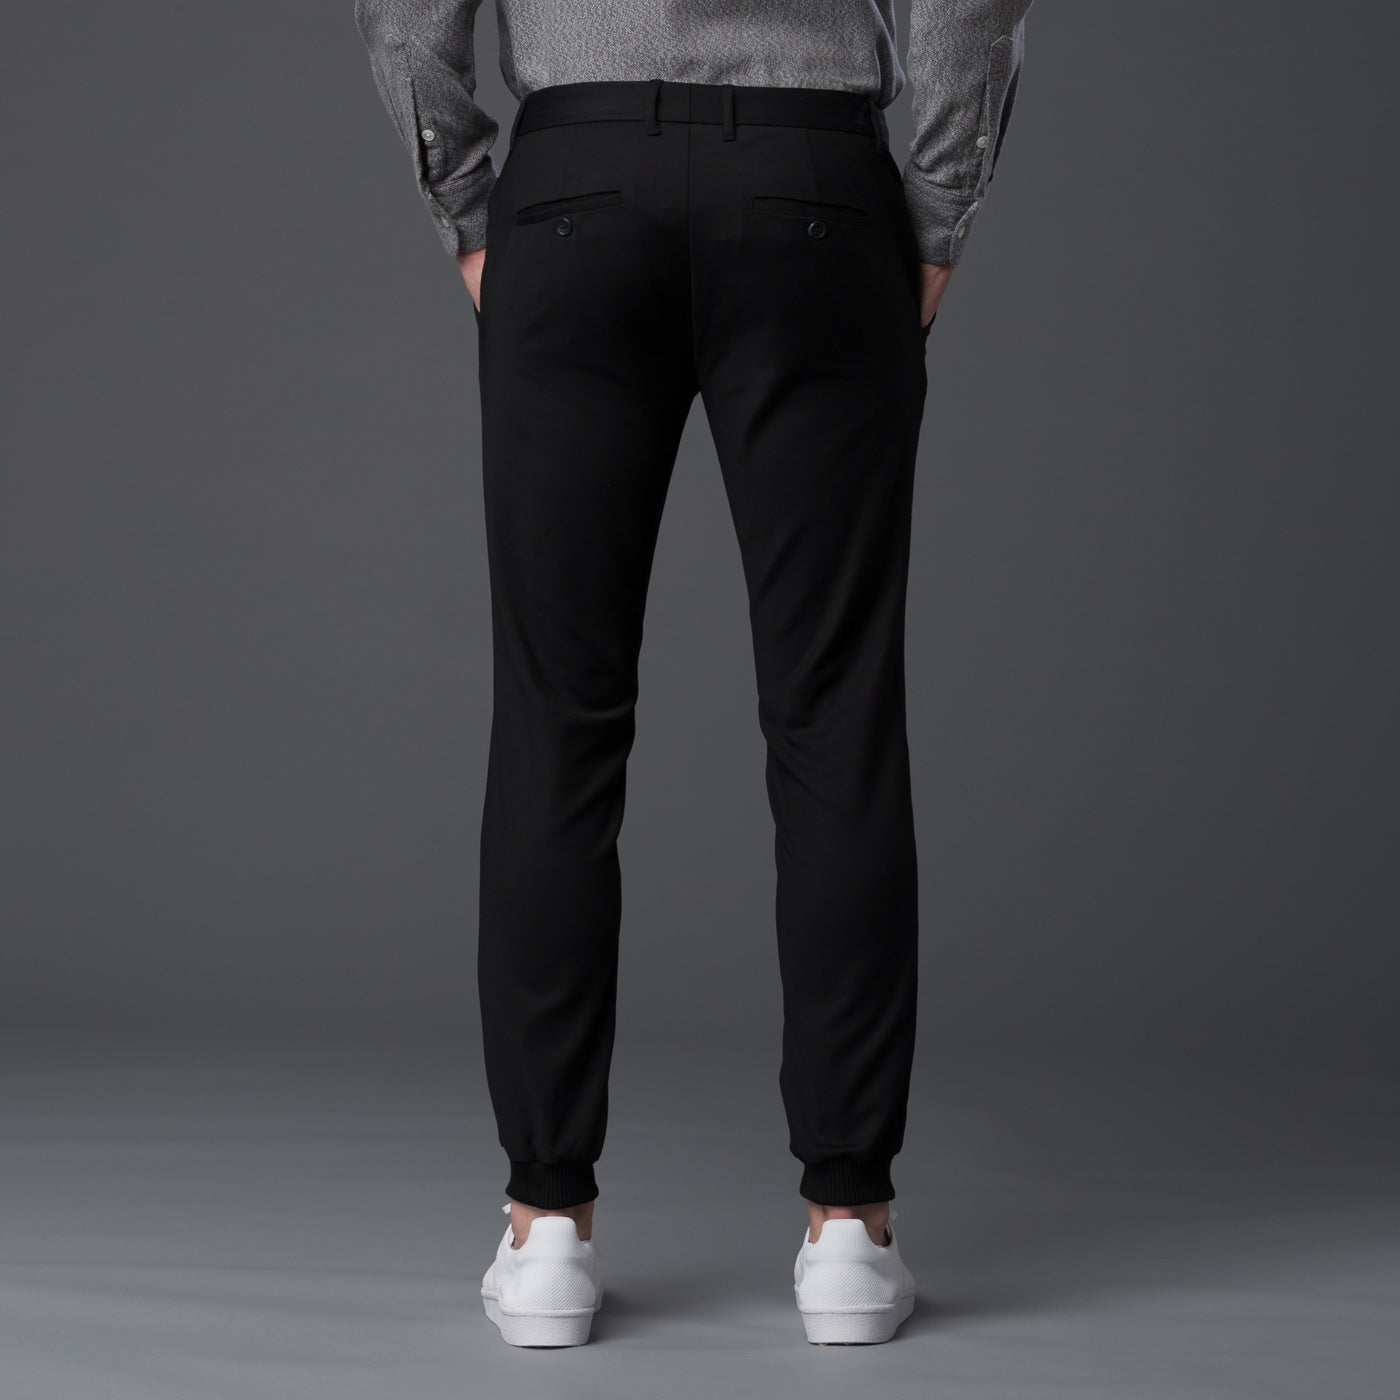 Garciavelez Tailored Sweatpants